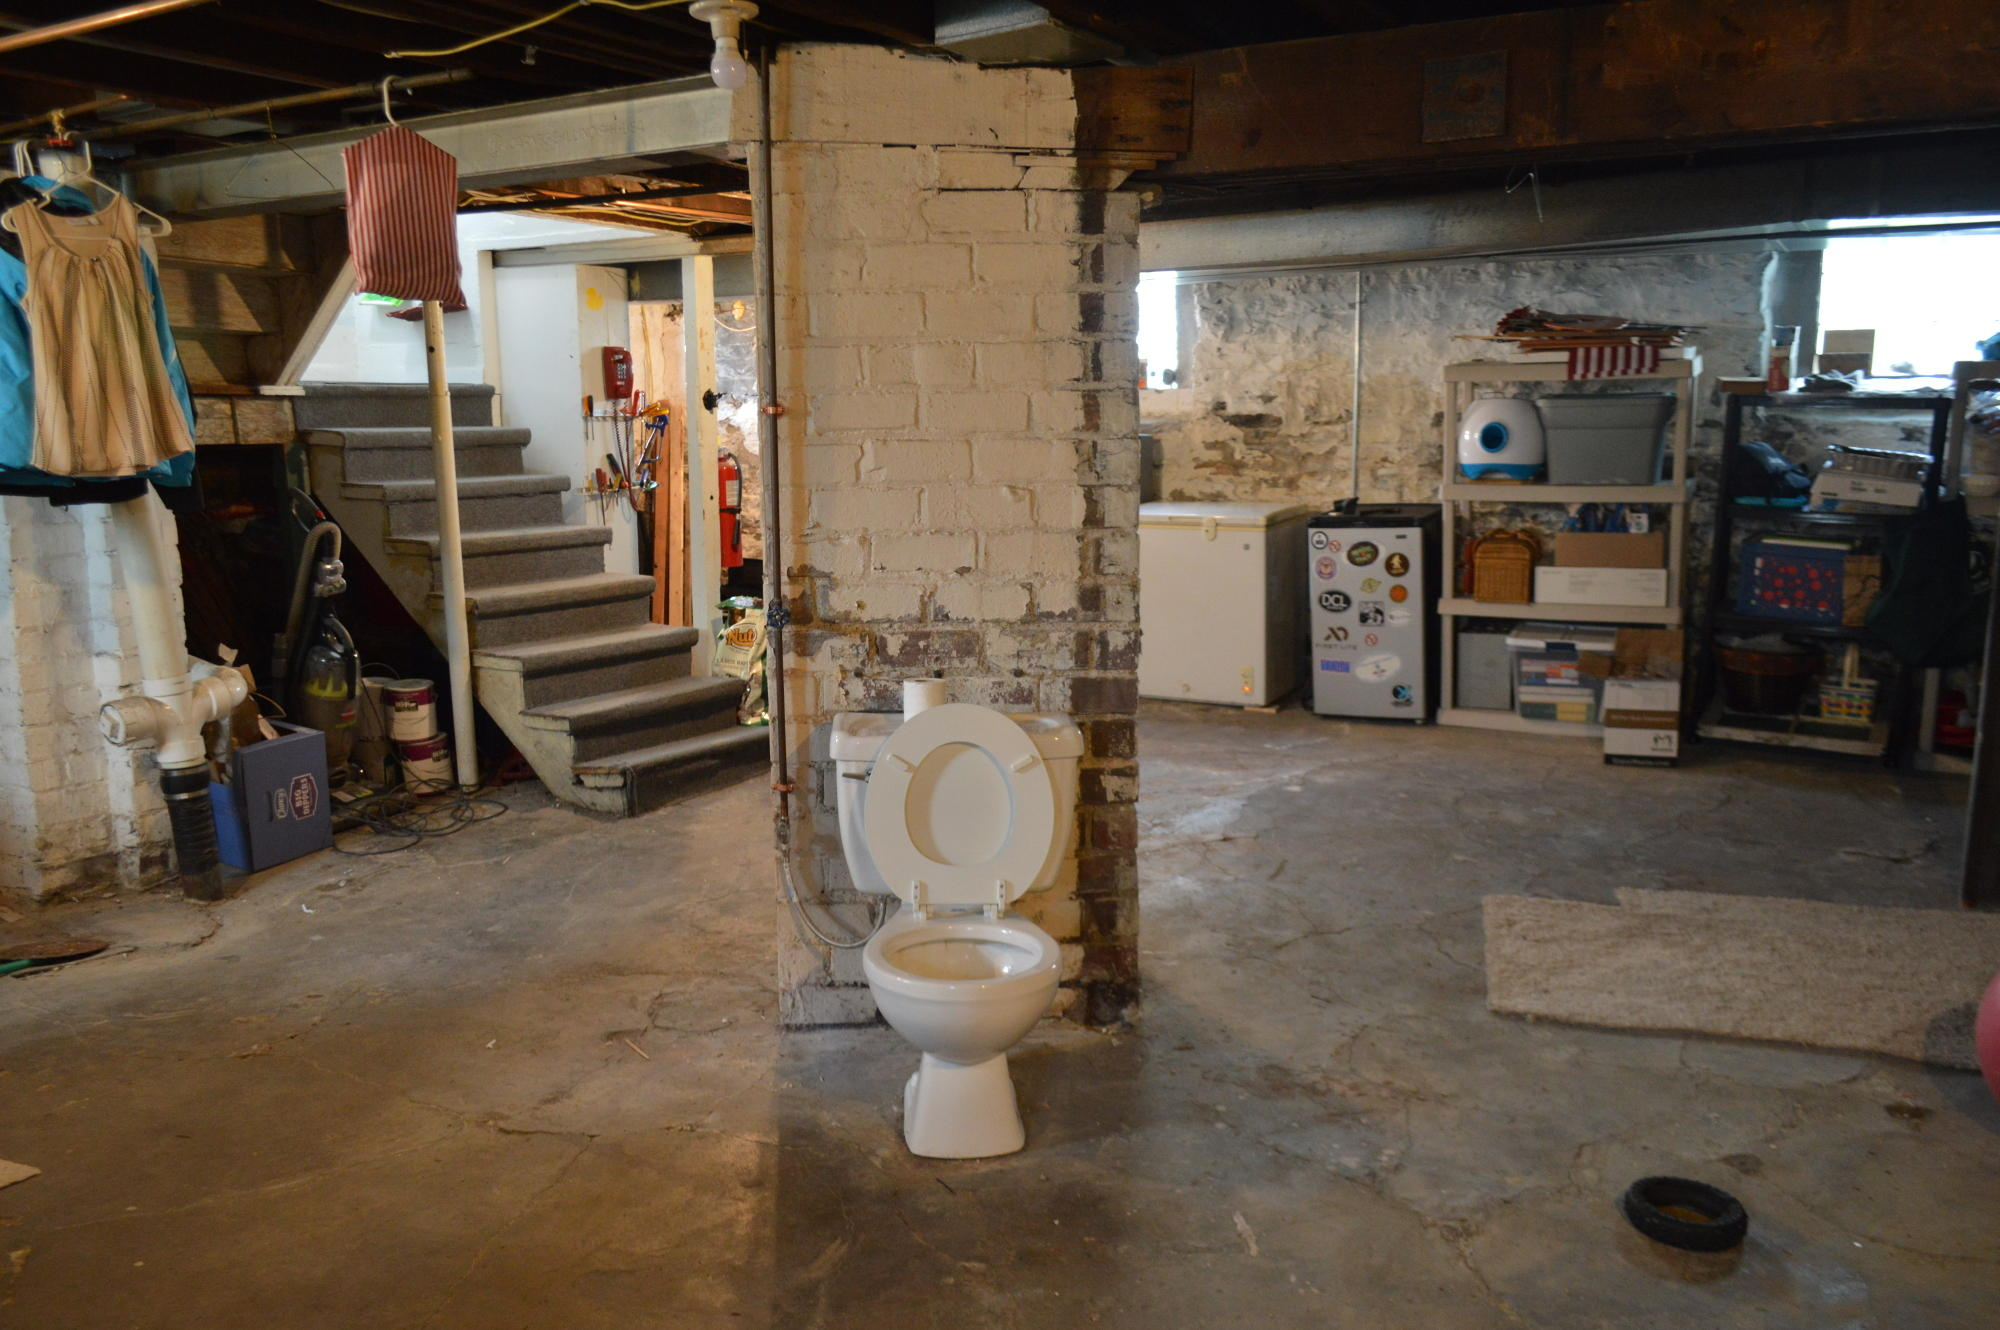 Bathroom Basement Ideas Documenting The Pittsburgh Potty An Architectural Mystery